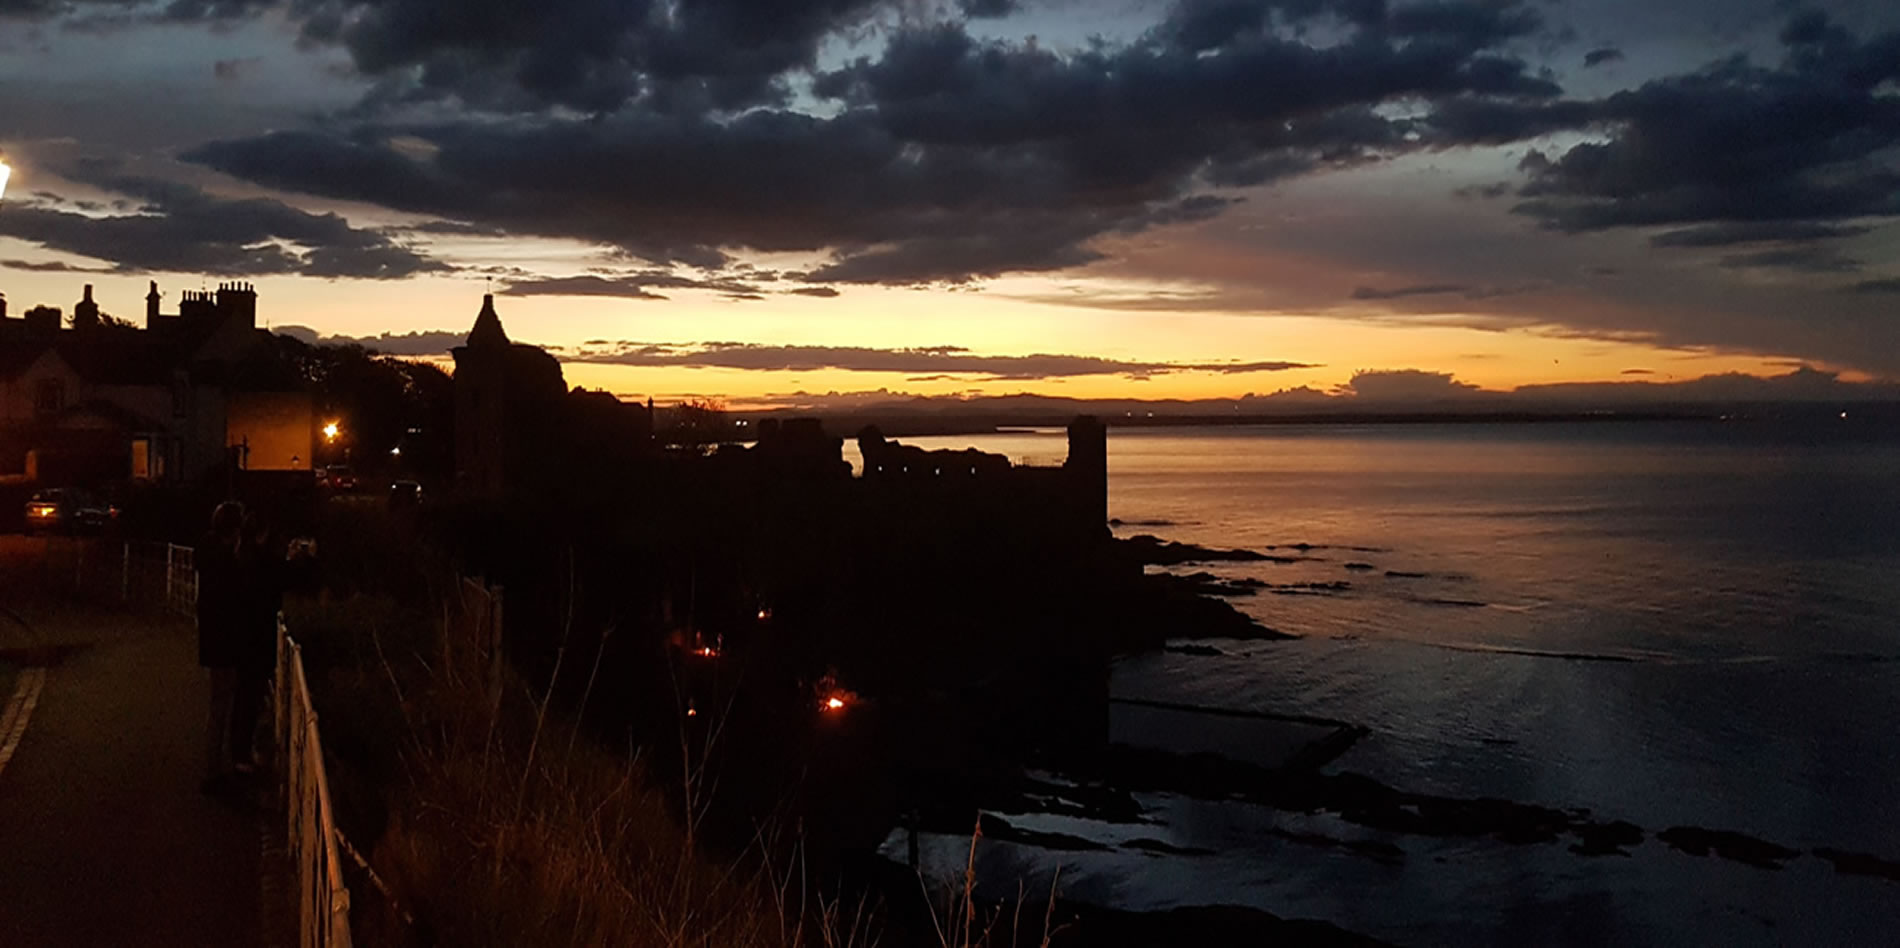 st andrews castle19 13 2 optimised - We also run - St Andrews Ghost Tours - St Andrews History Tours